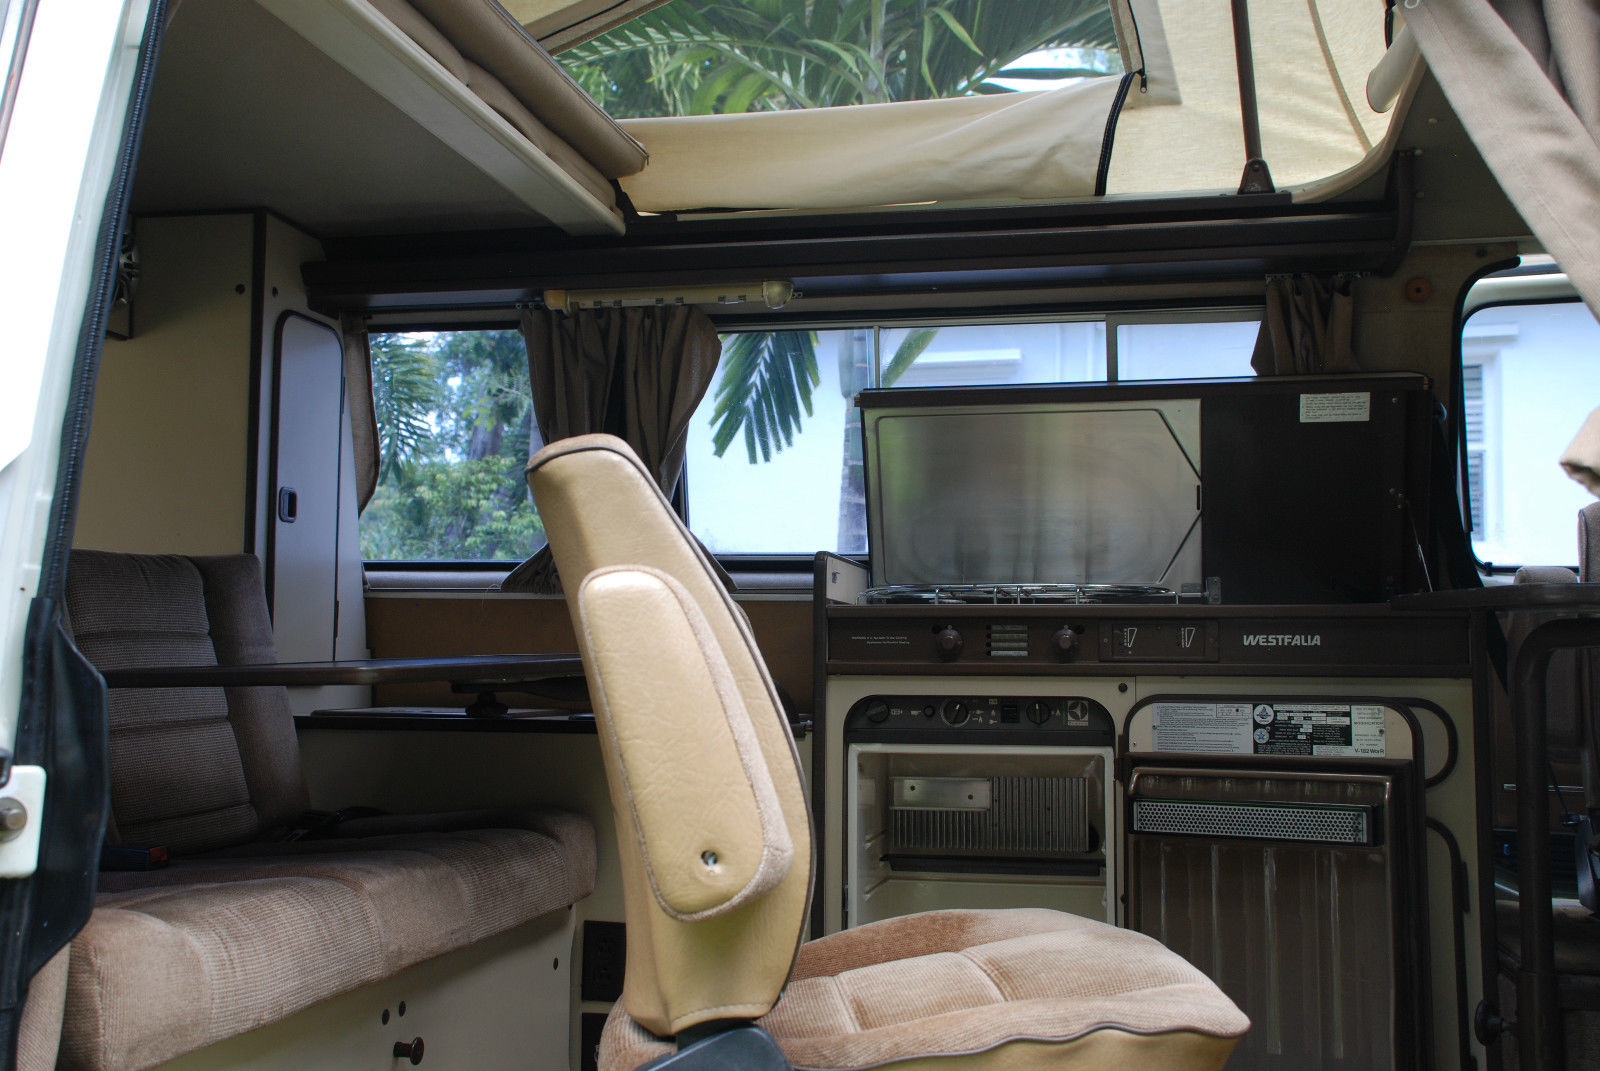 1985 Vanagon Westfalia - New VW-GoWesty 2300 cc water cooled